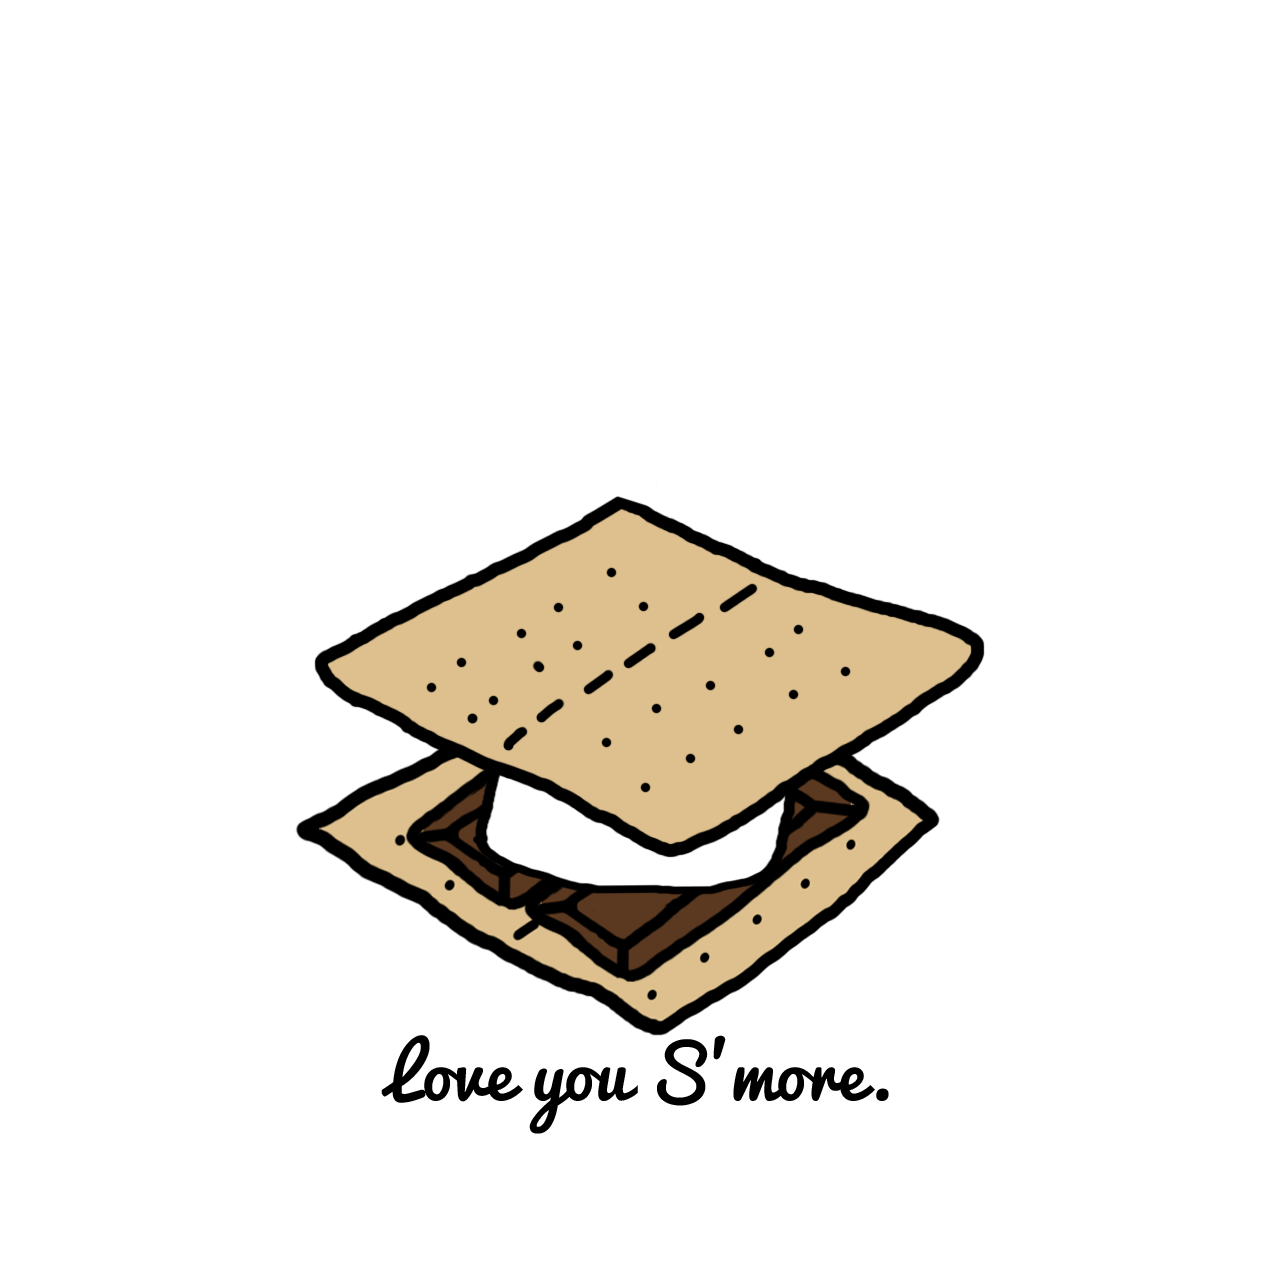 Smores Clipart Yummy Smores Yummy Transparent Free For